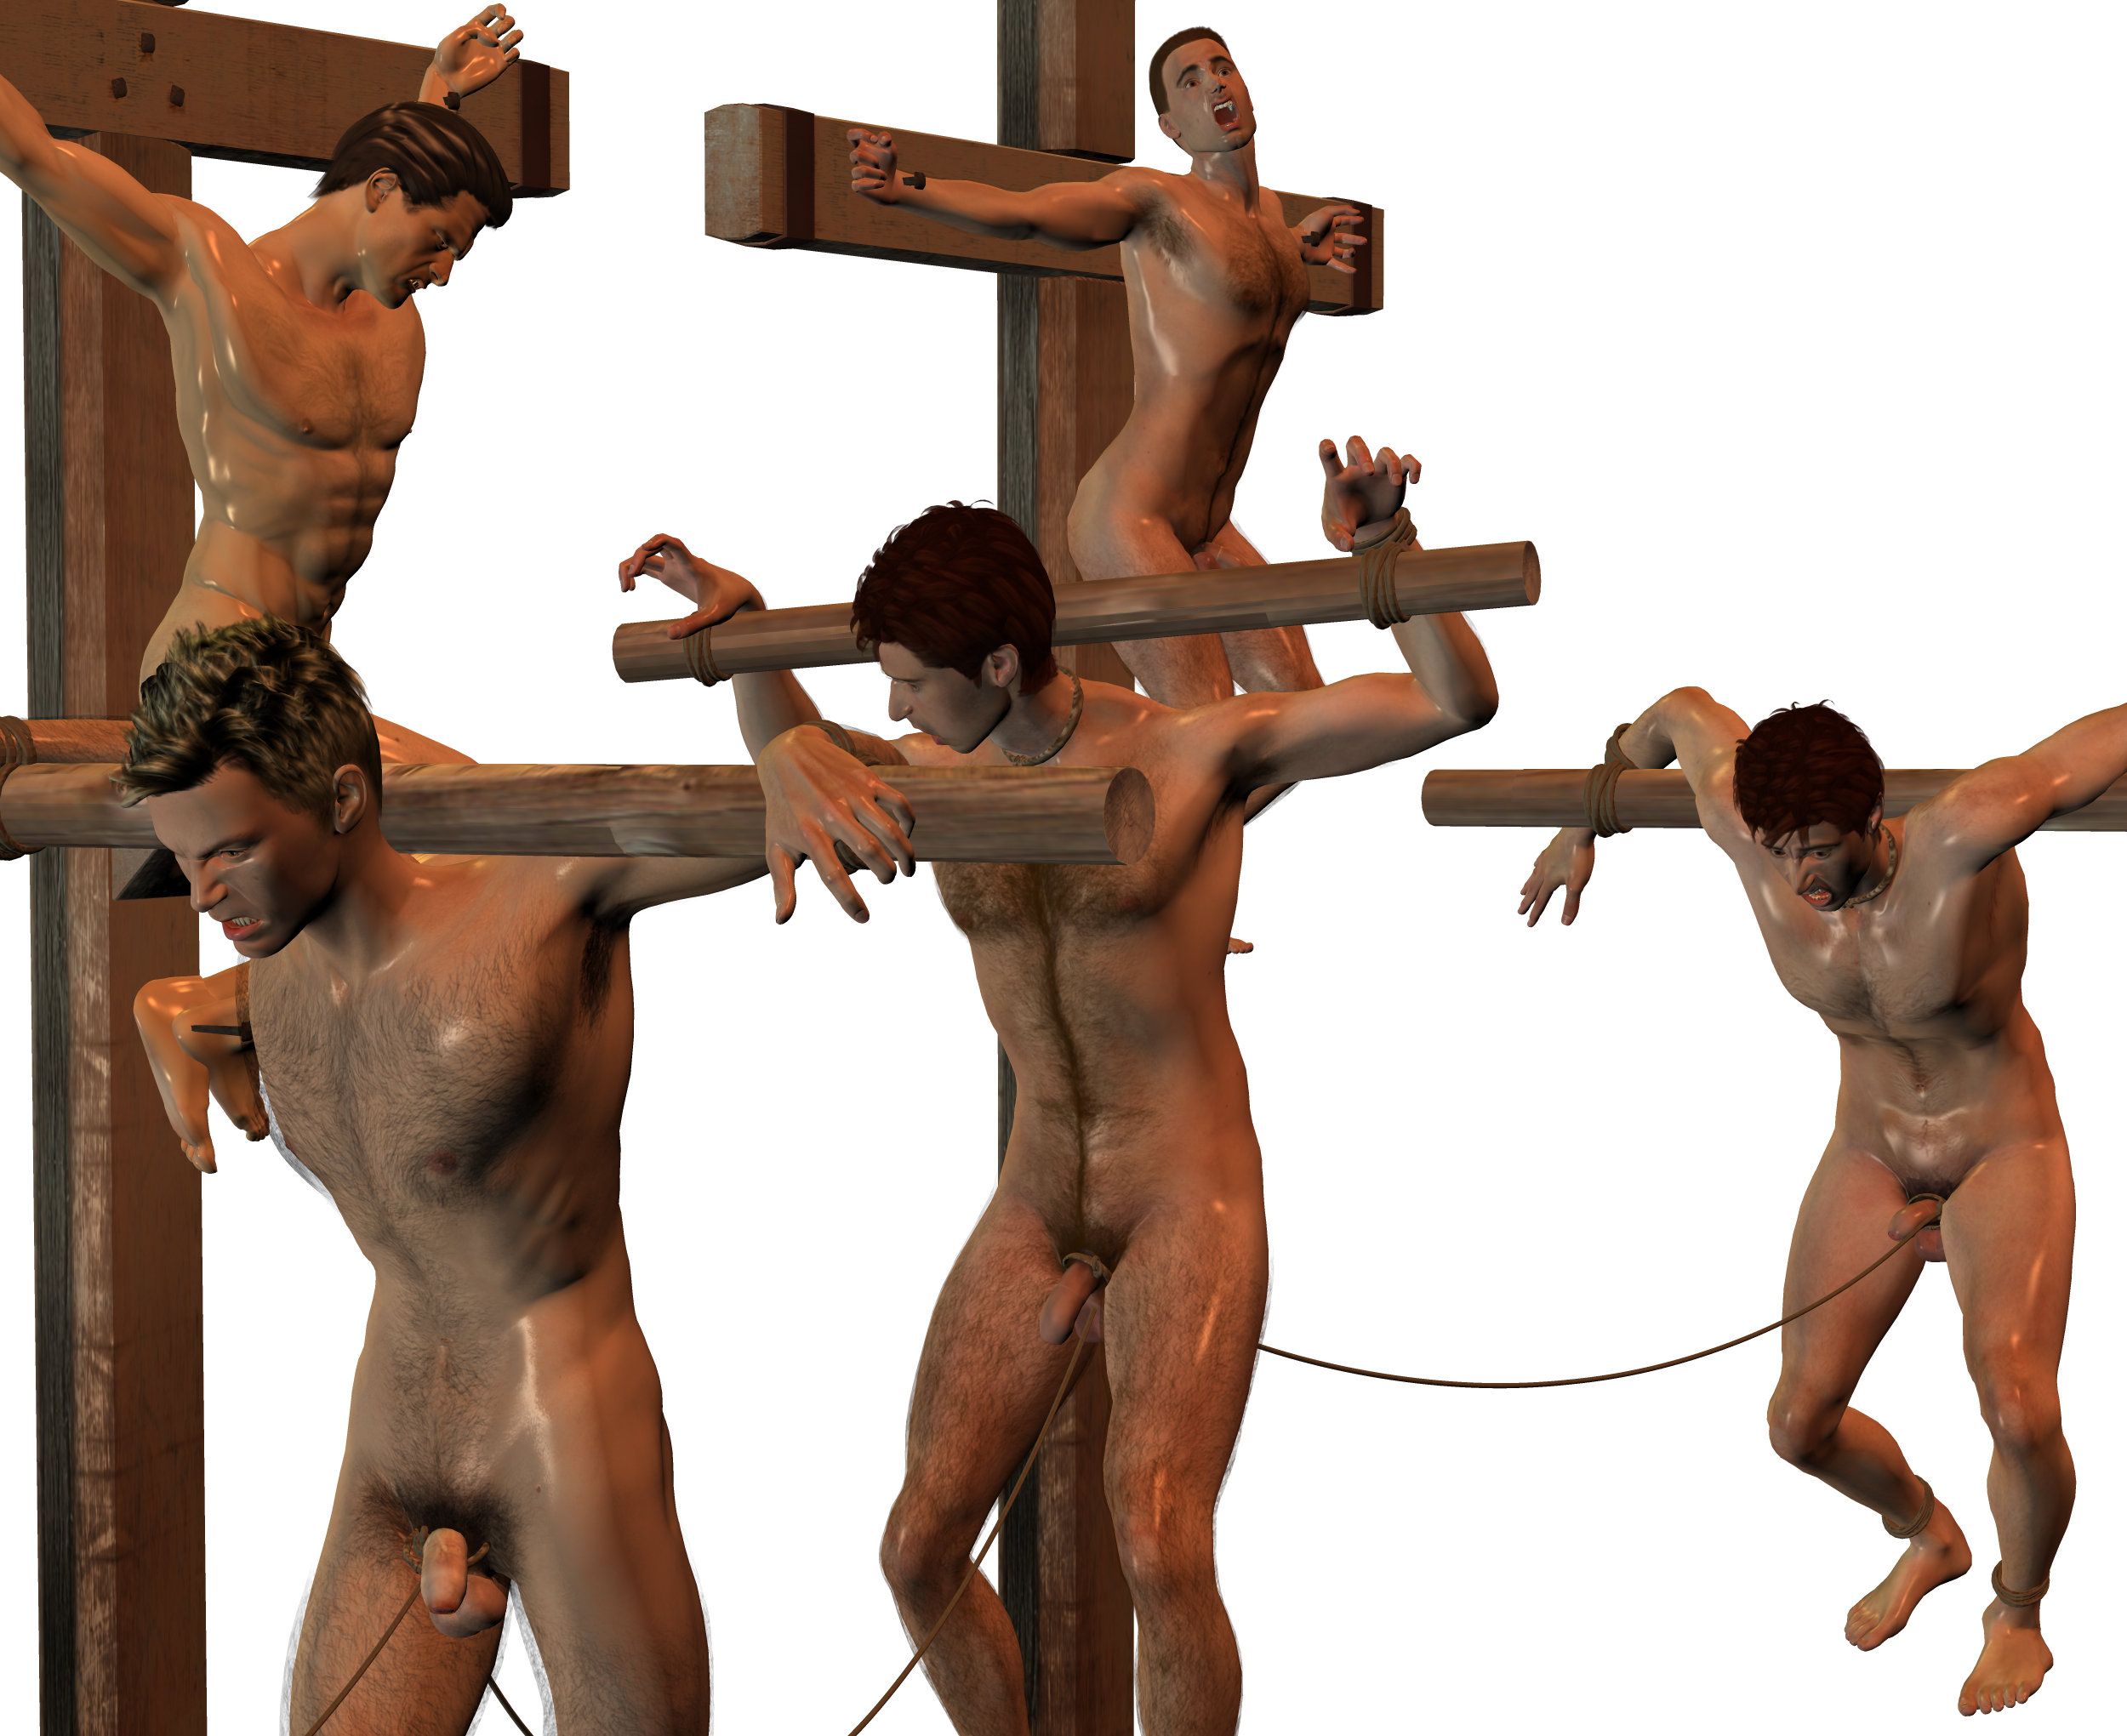 Erotic gay crucifixion new sex pics nude picture